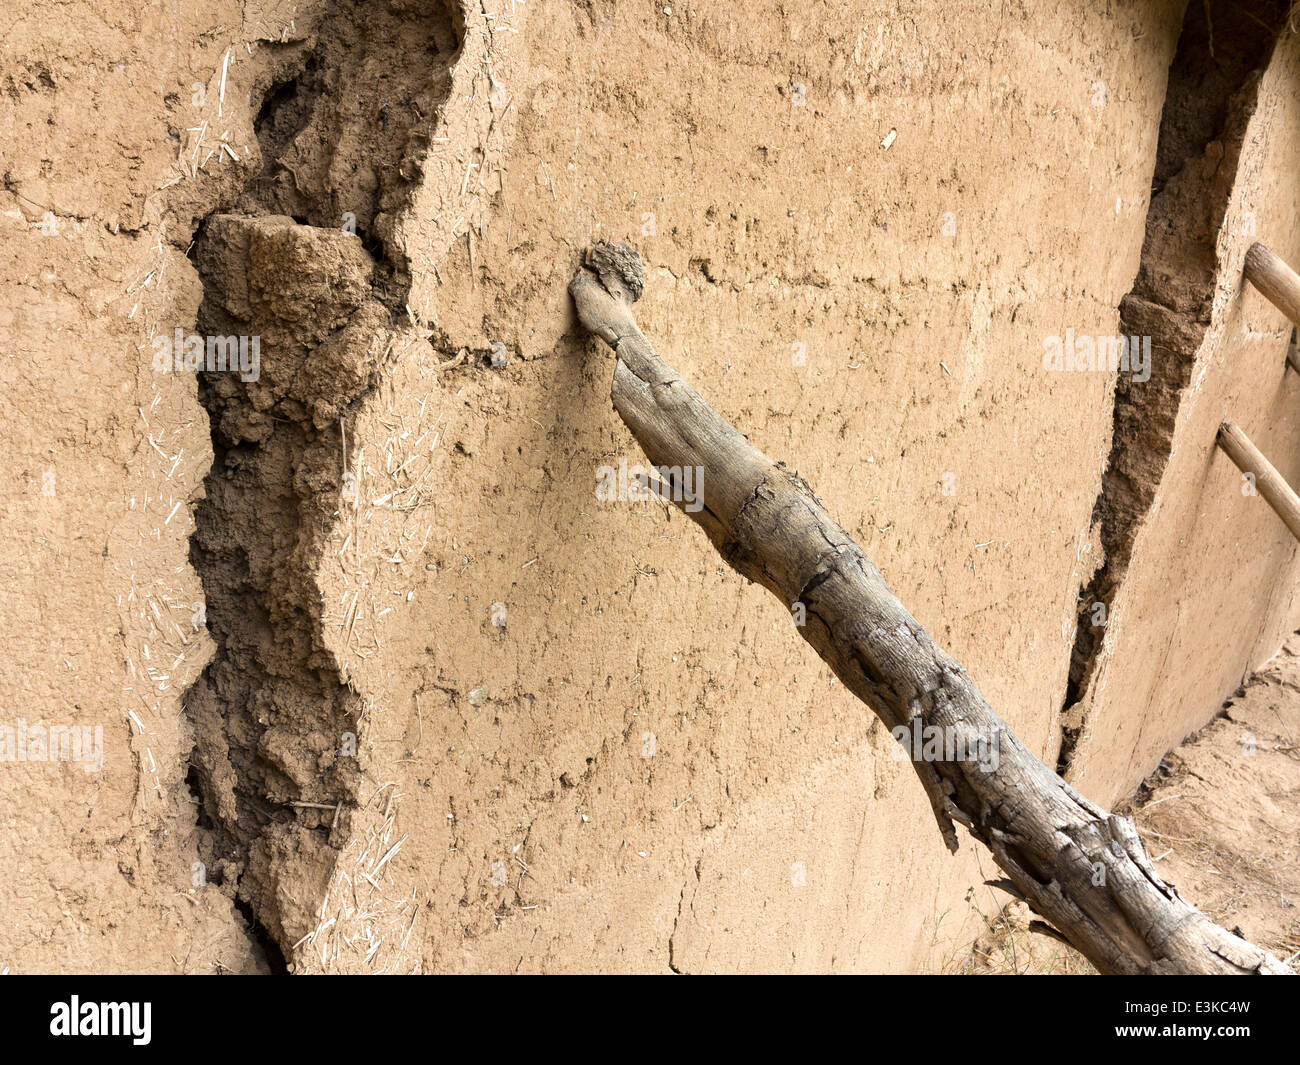 A cracked and leaning section of mud-brick wall being supported by a wooden prop - Stock Image